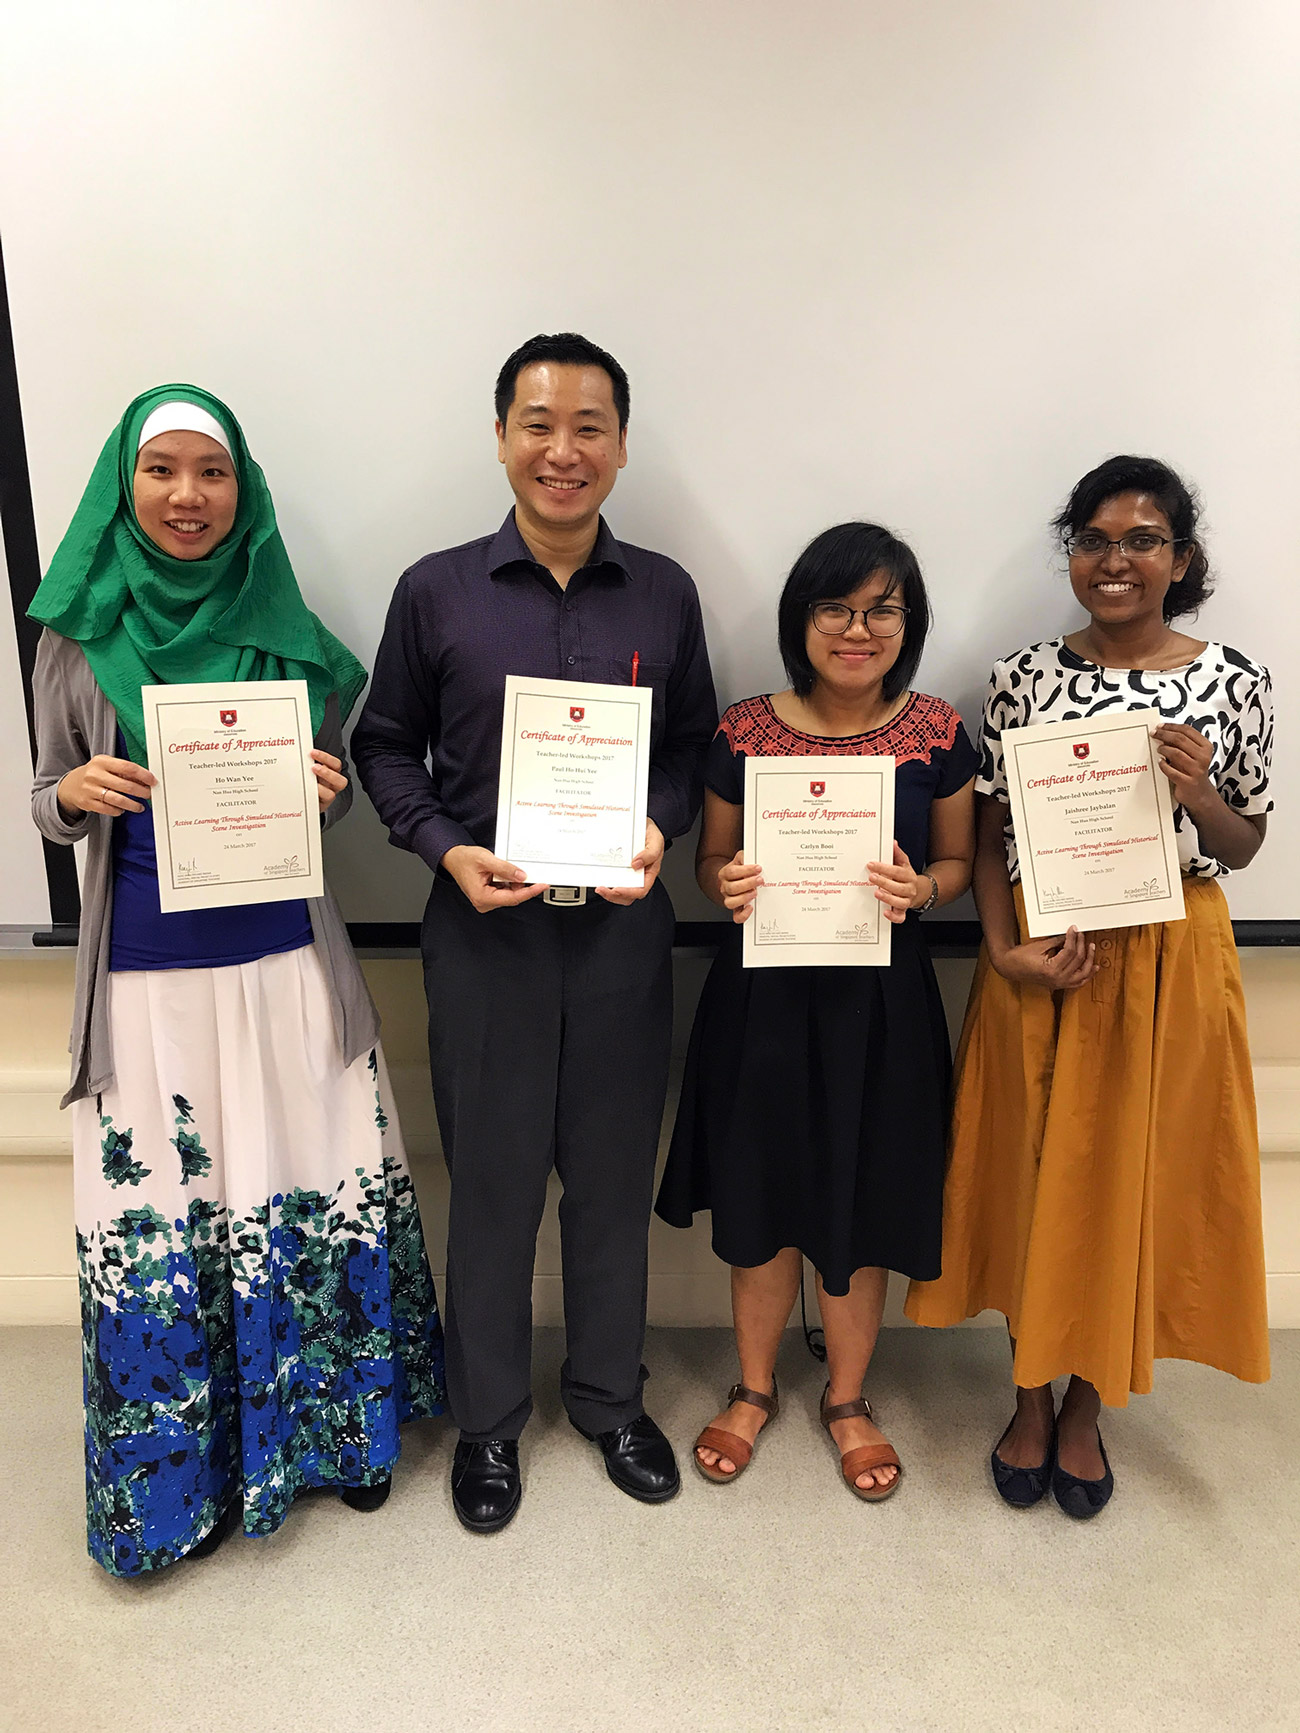 A-photograph-of-the-workshop-trainers-after-receiving-their-certificates-of-appreciation-from-AST.jpg